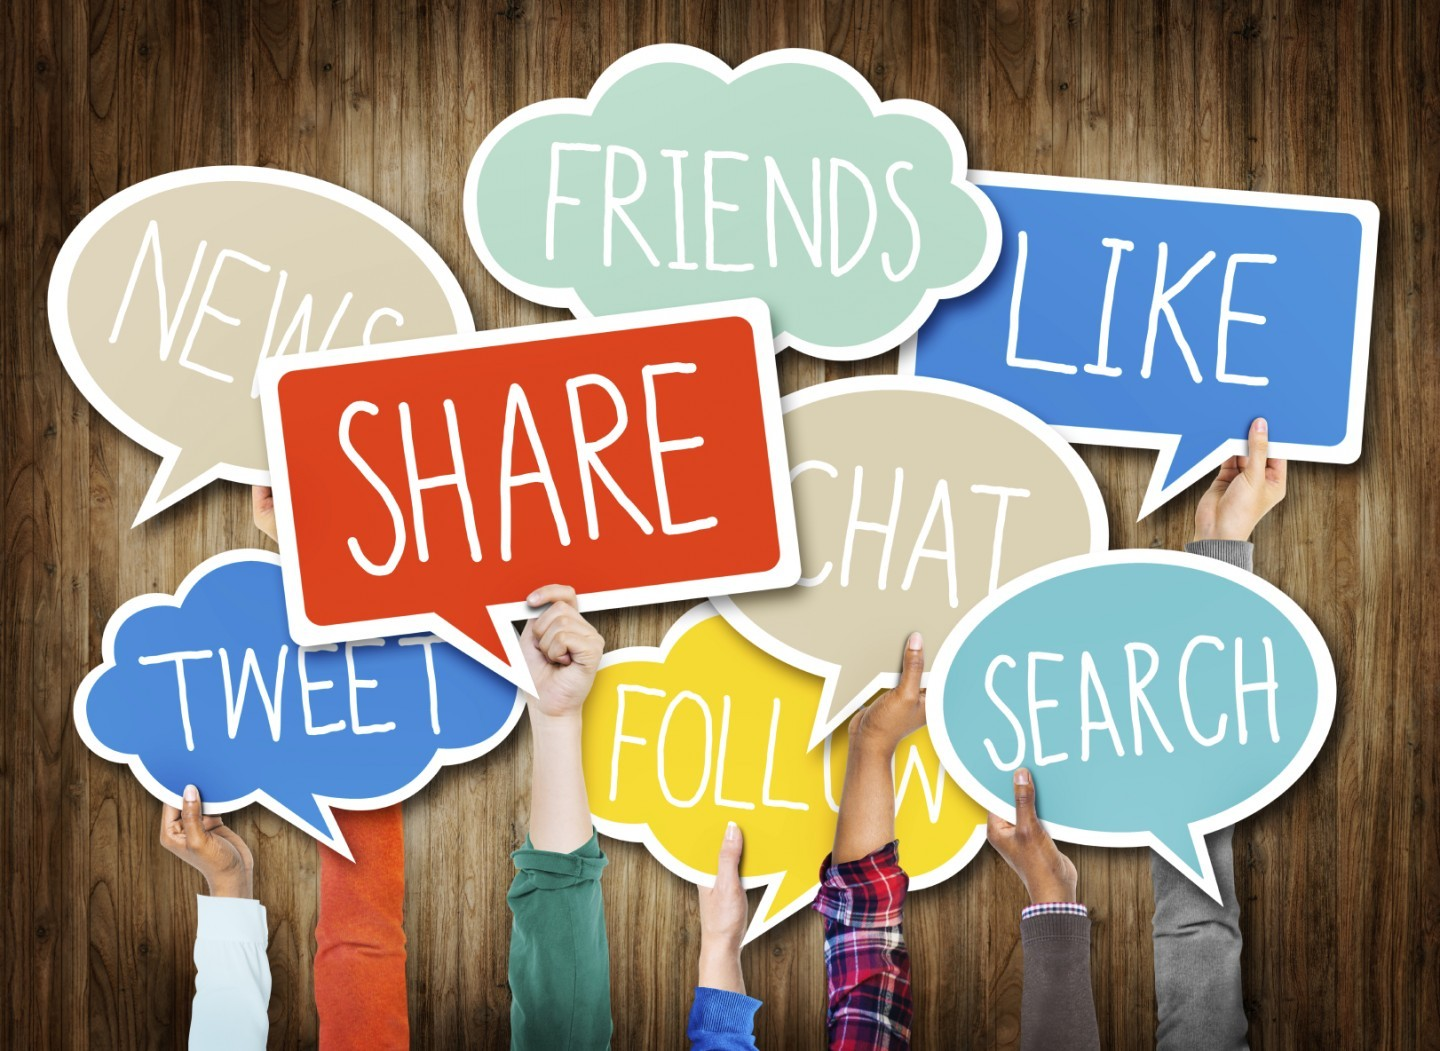 crowd-funding-and-social-media-